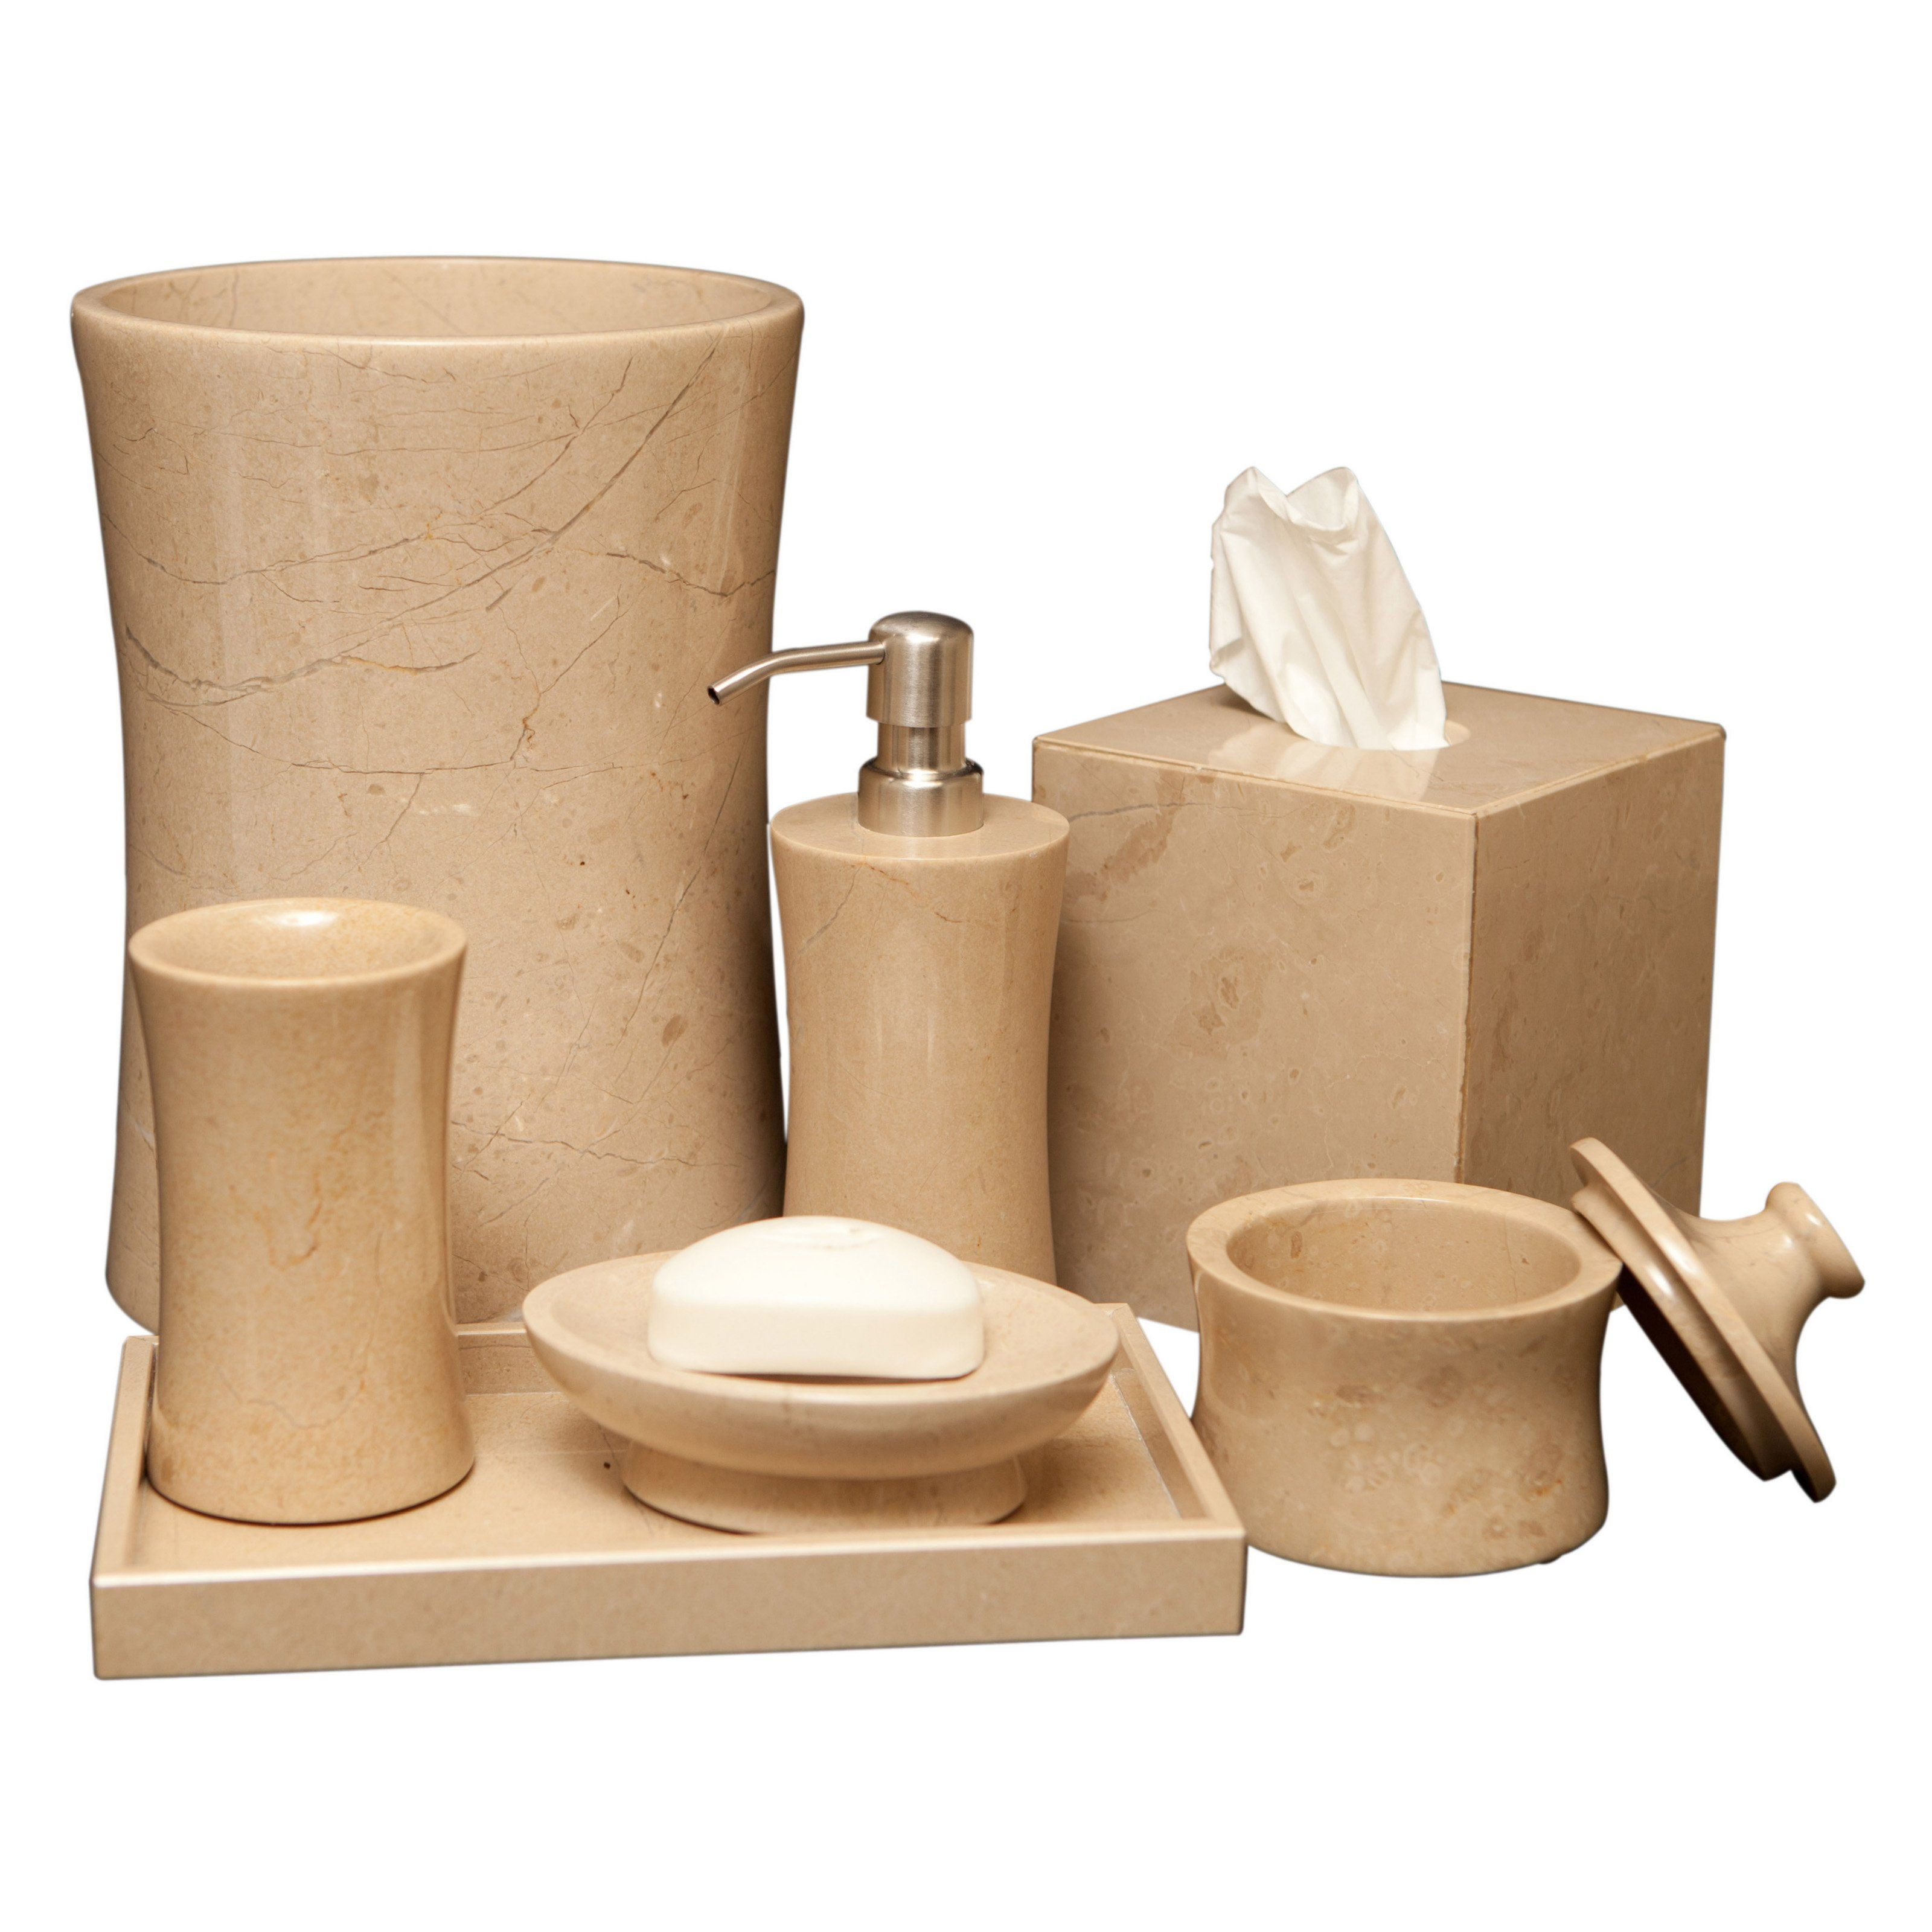 Design Bathroom Accessories Sets With Luxury Home Interiors